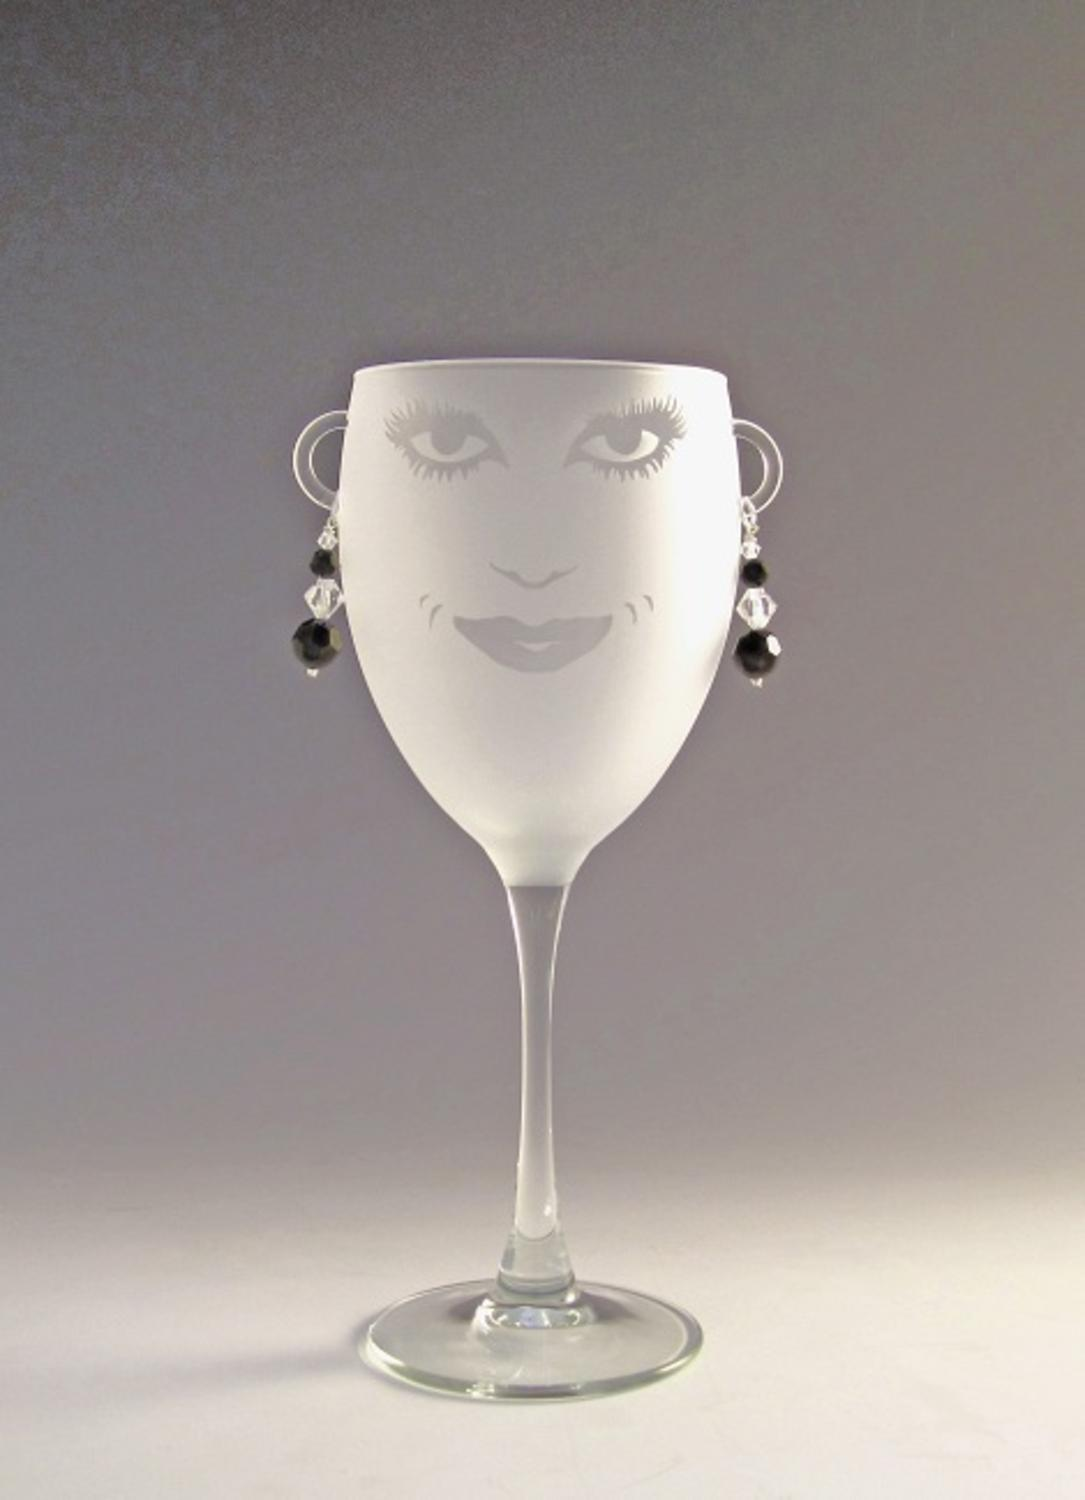 Set of 4 Lola Etched Wine Drinking Glasses with Amethyst Earrings 10.5 ounces by Diva At Home